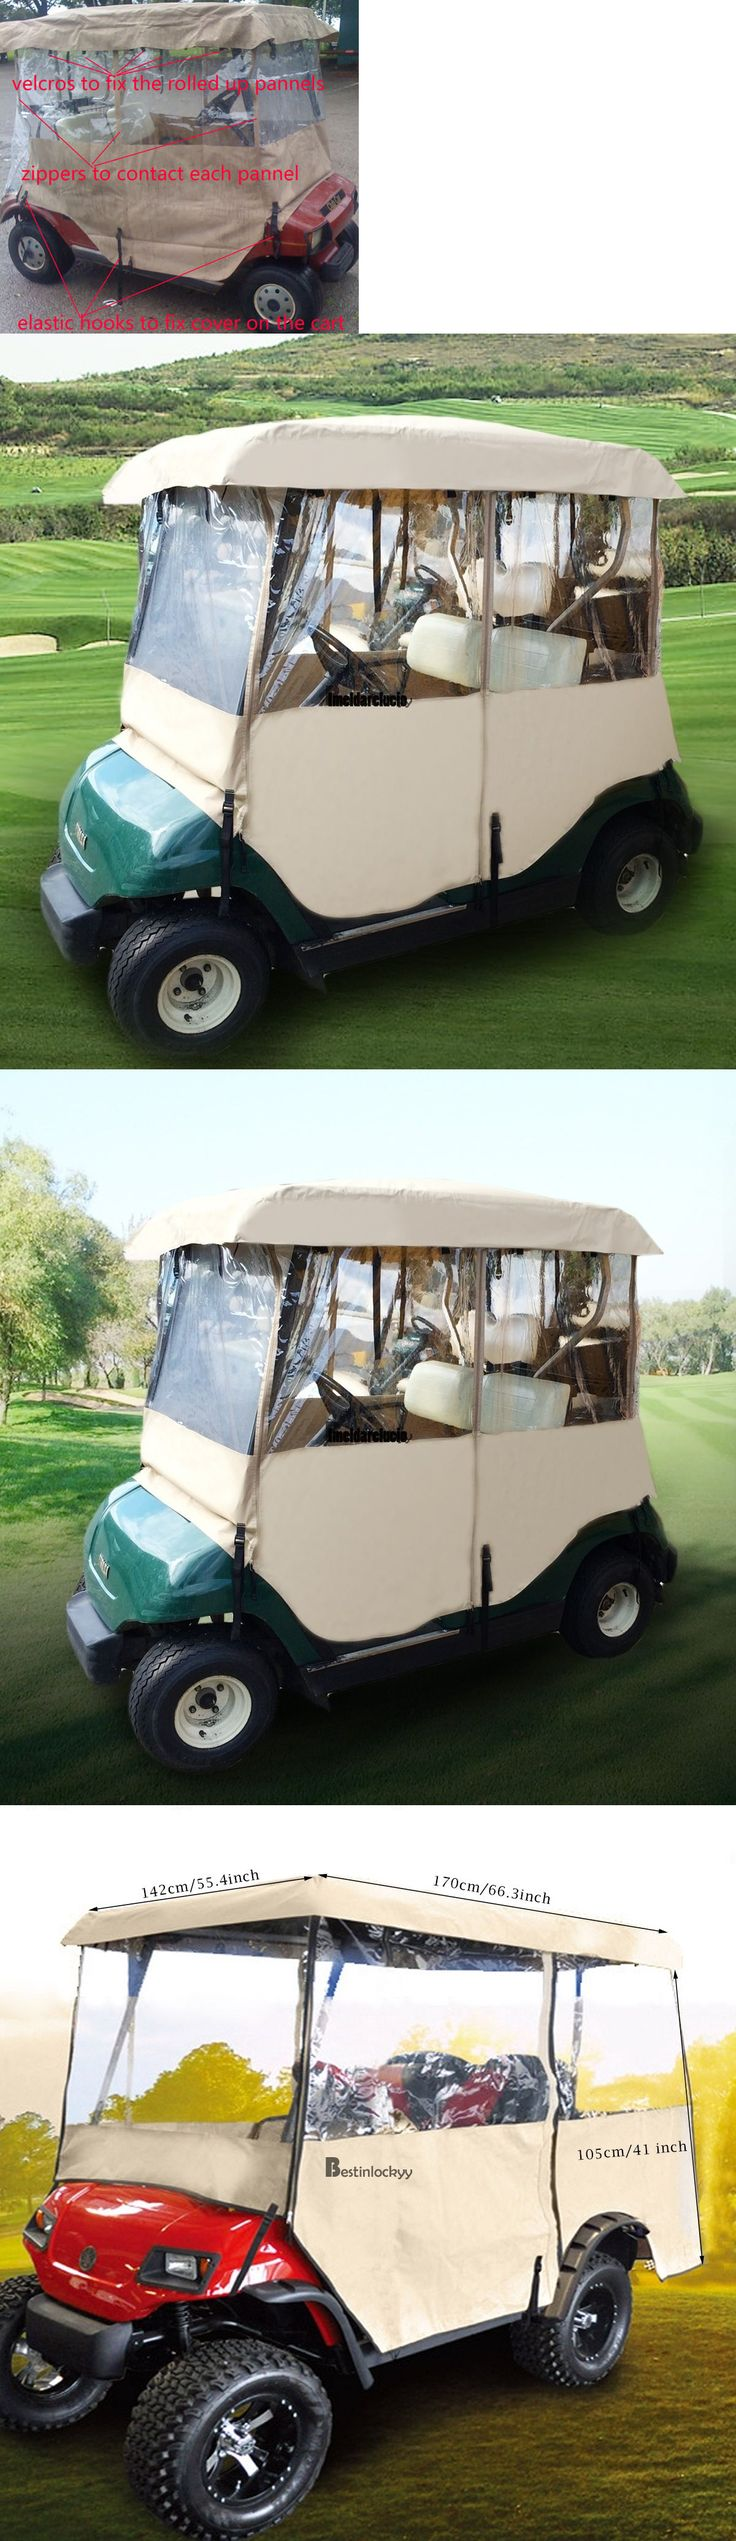 Push-Pull Golf Carts 75207: Golf Cart Rain Cover Enclosure For Club Car 2Person Yamaha Precedent Golf Course -> BUY IT NOW ONLY: $52.04 on eBay!